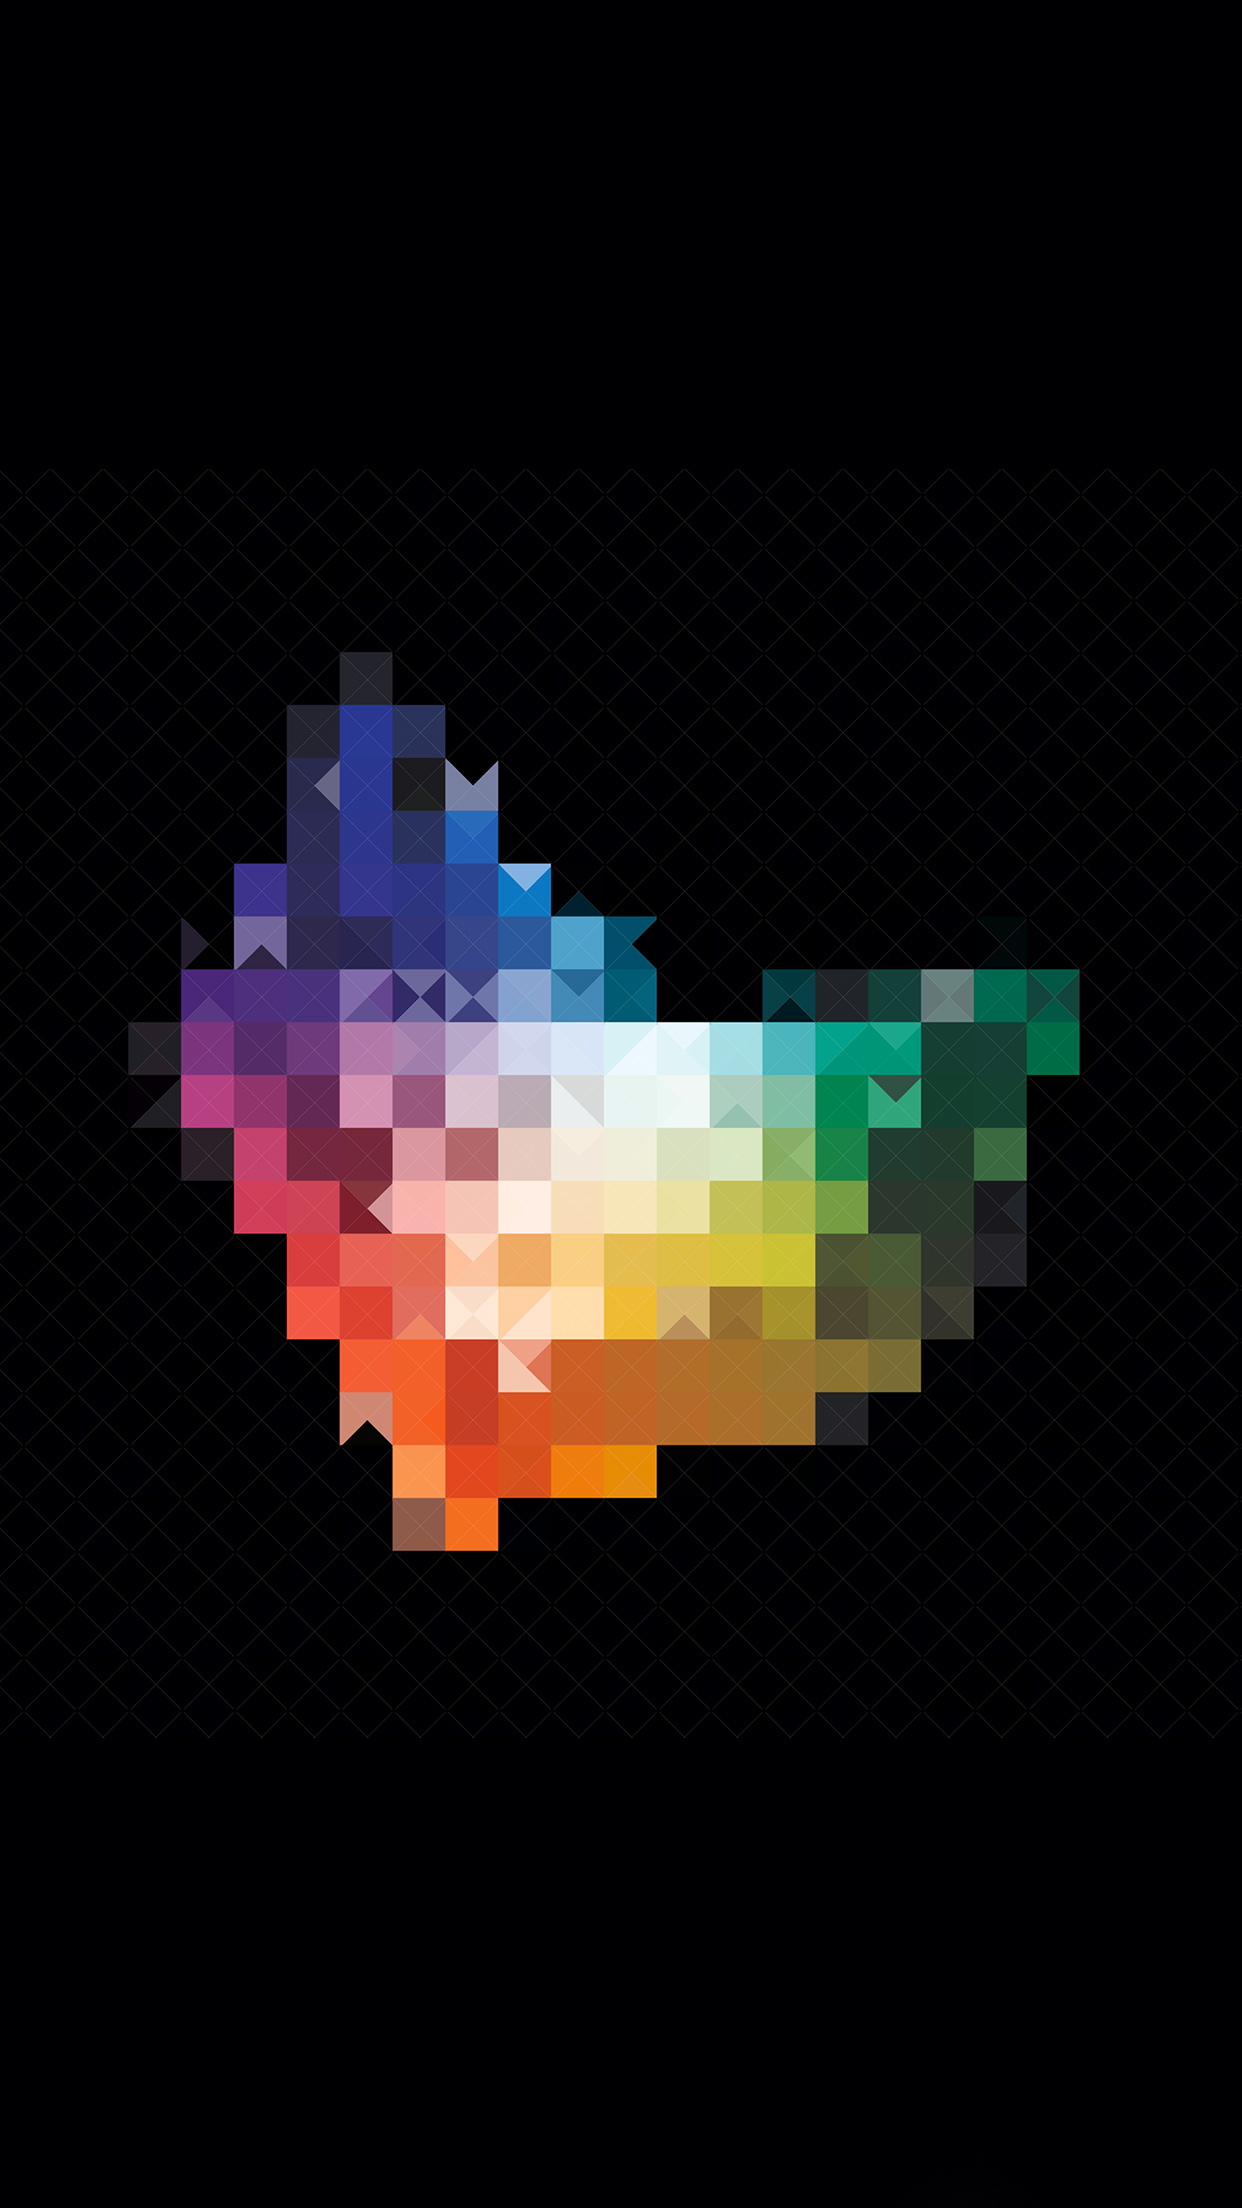 Abstract iPhone 3Wallpapers Parallax Les 3 Wallpapers iPhone du jour (03/06/2015)